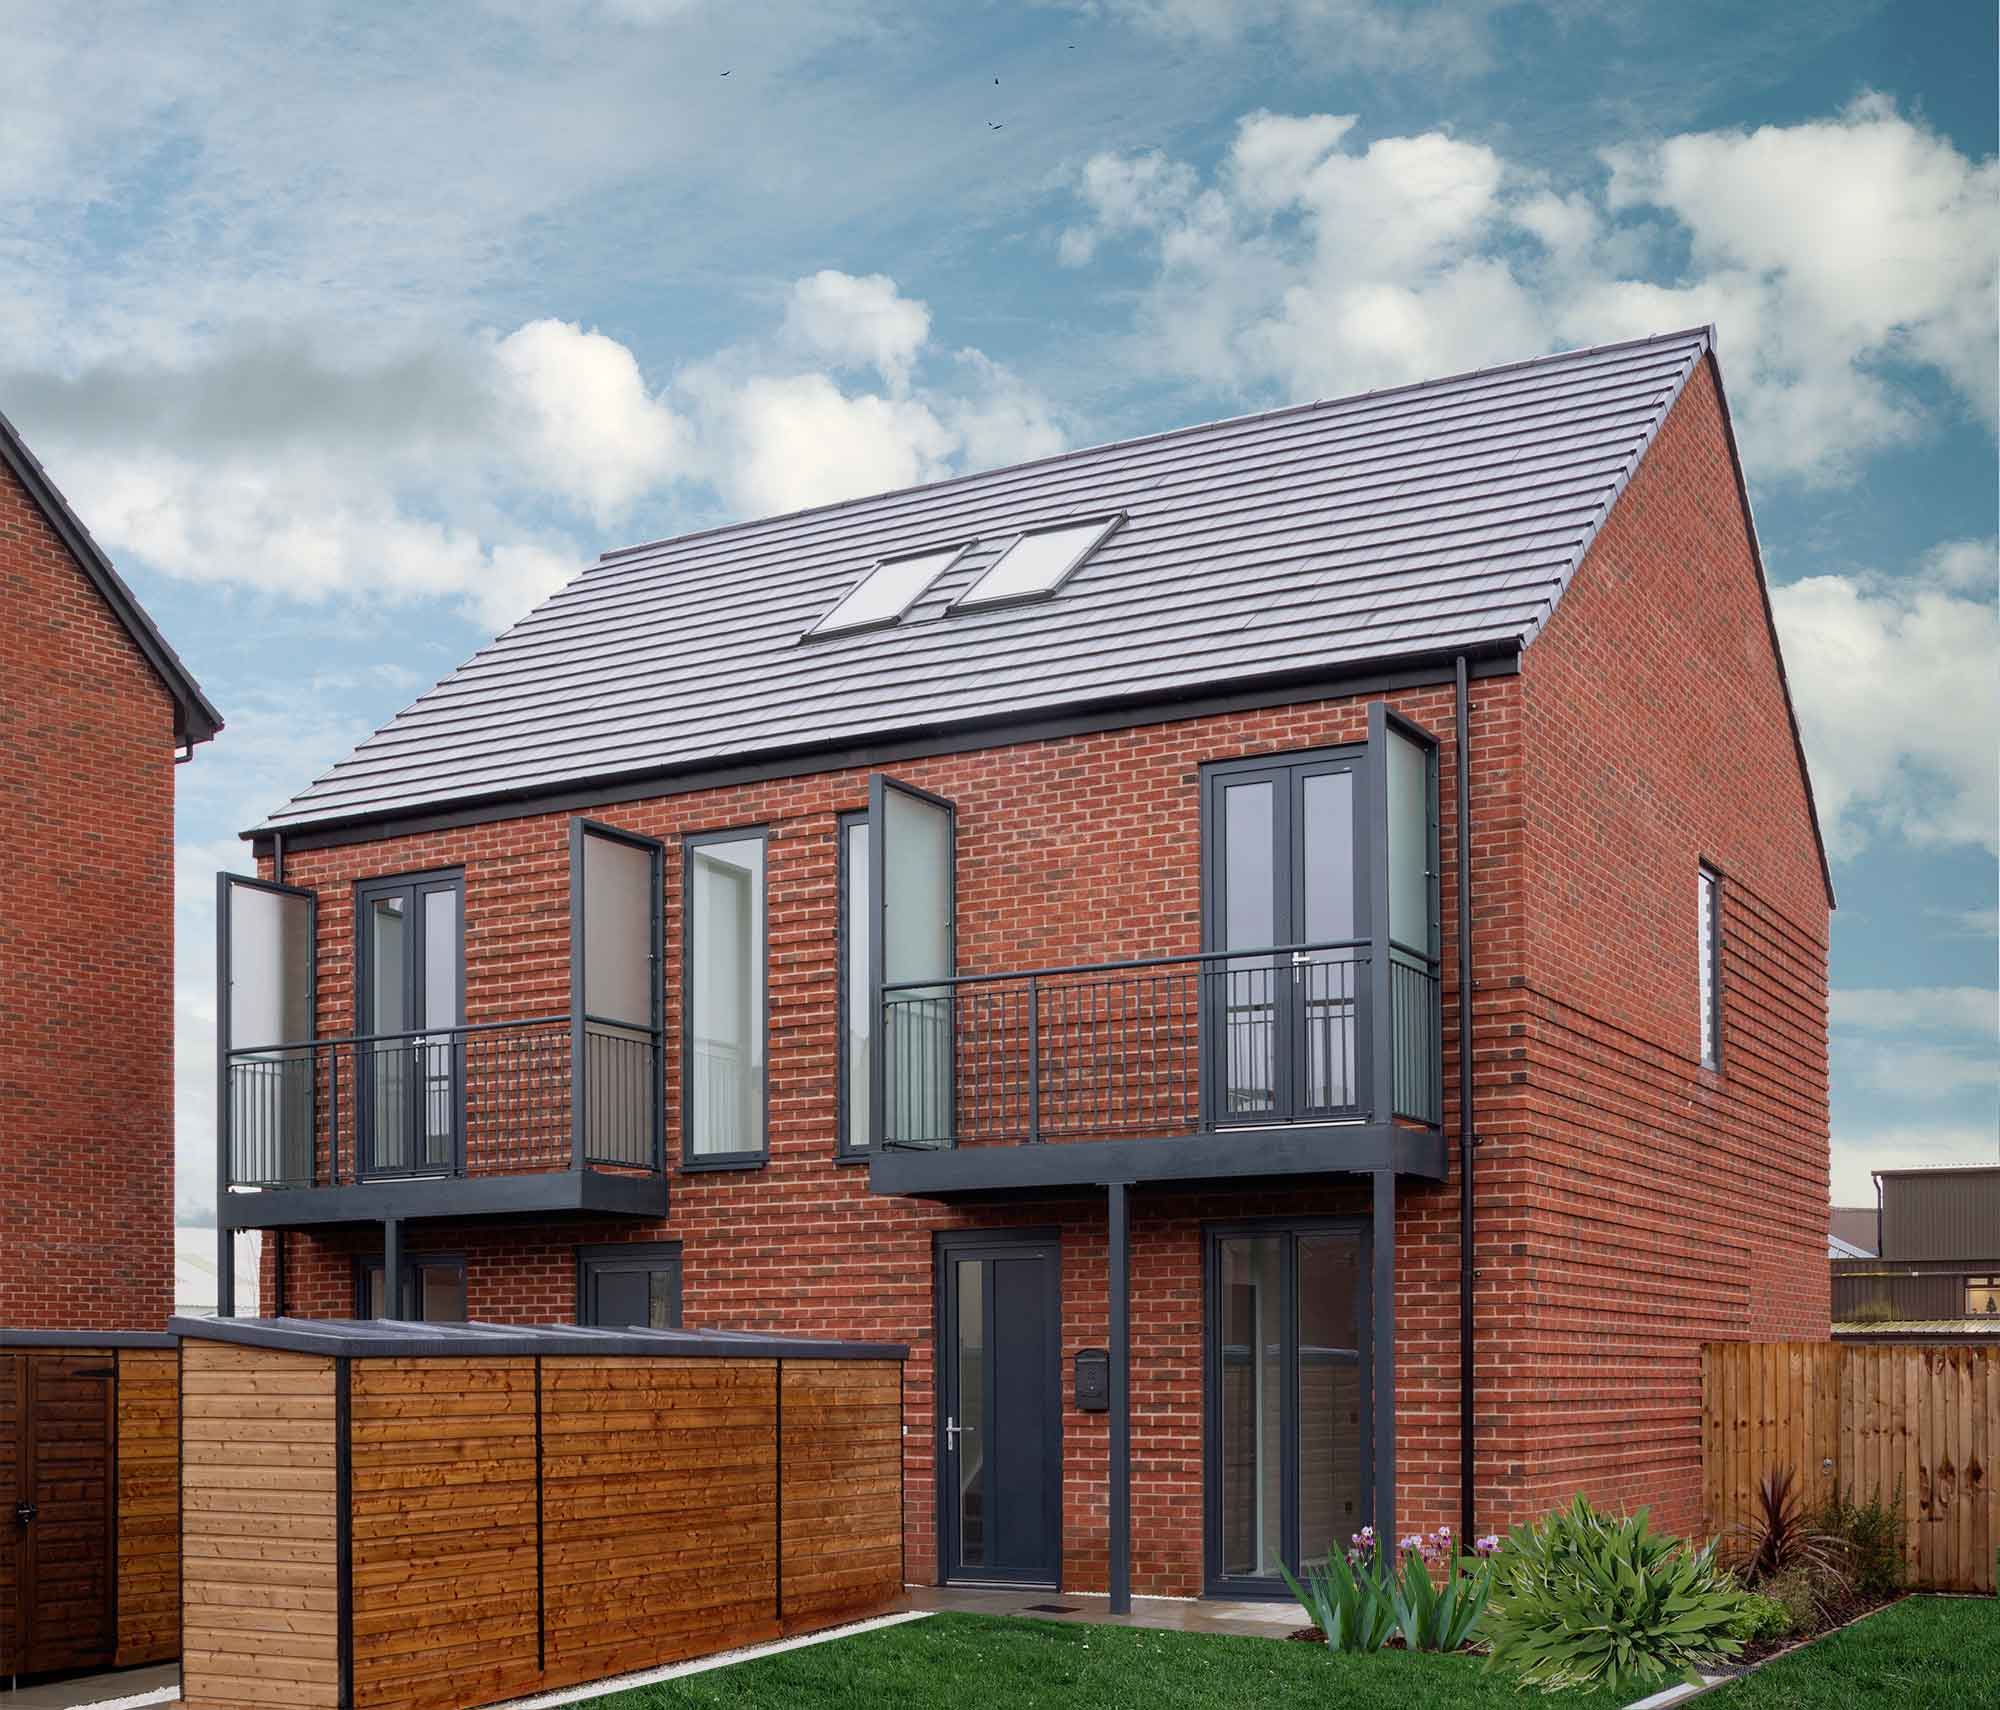 taylor-wimpey-openstudio-architects-exterior